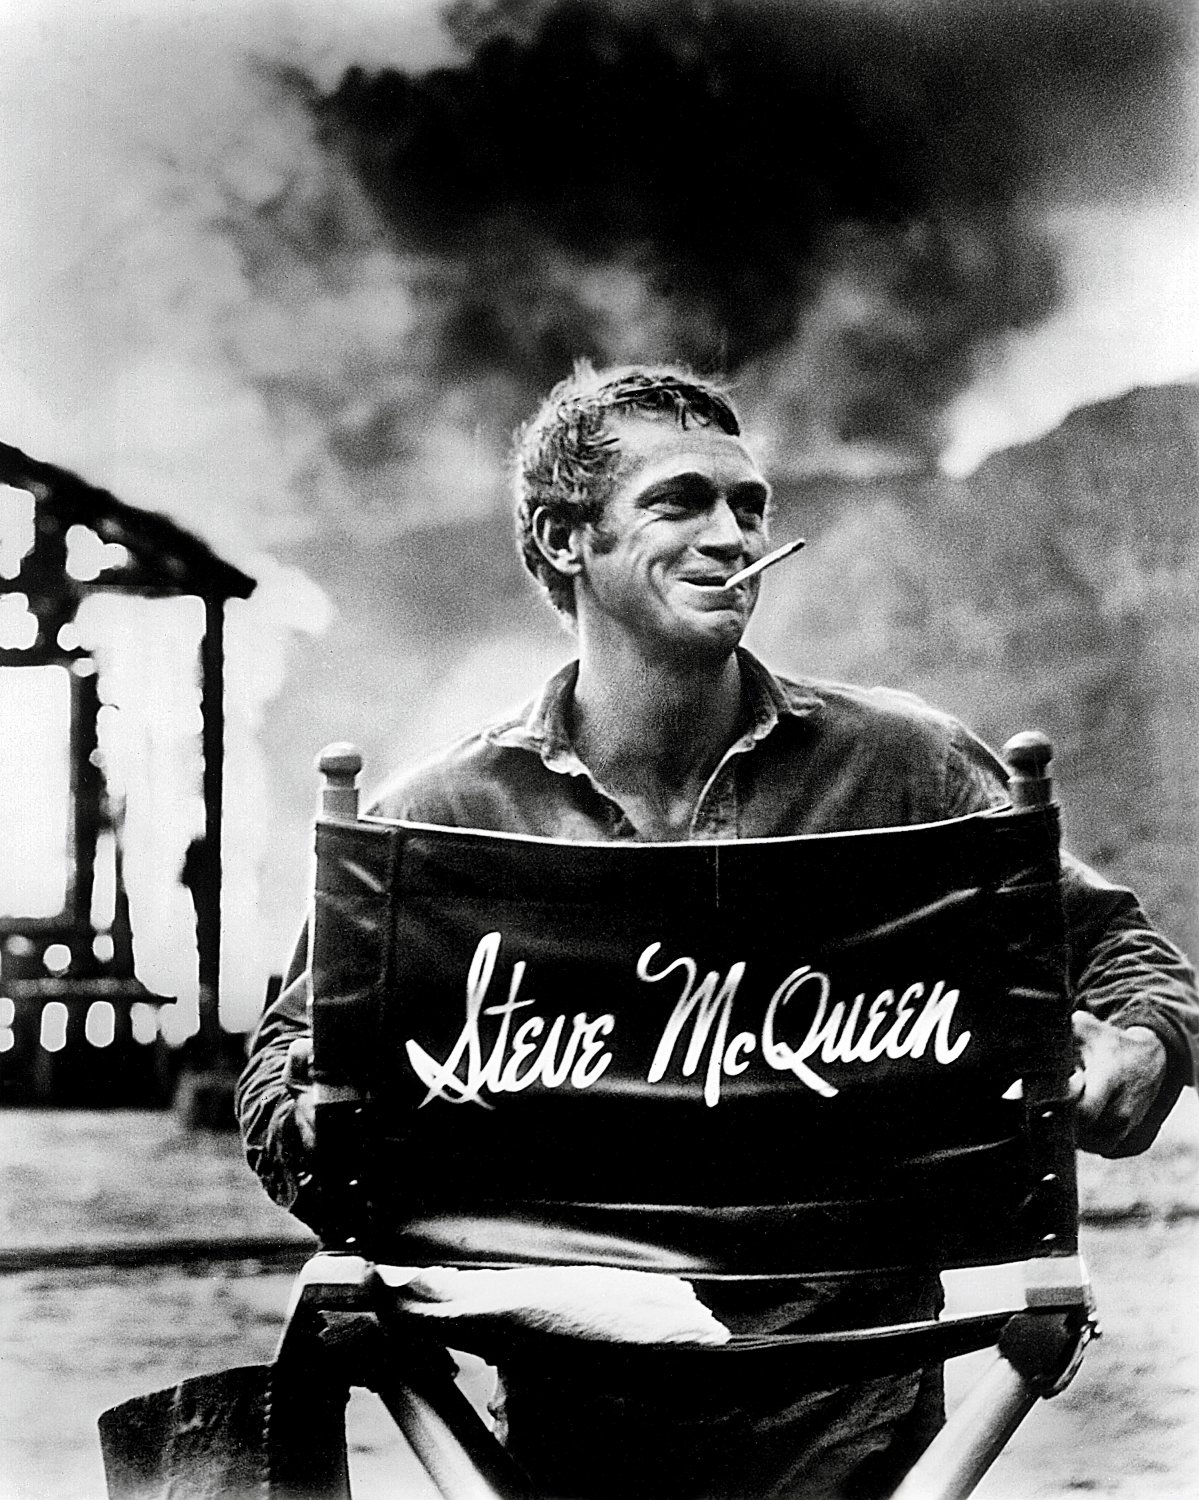 STEVE McQUEEN LEGENDARY ACTOR - 8X10 PUBLICITY PHOTO (AB-149)